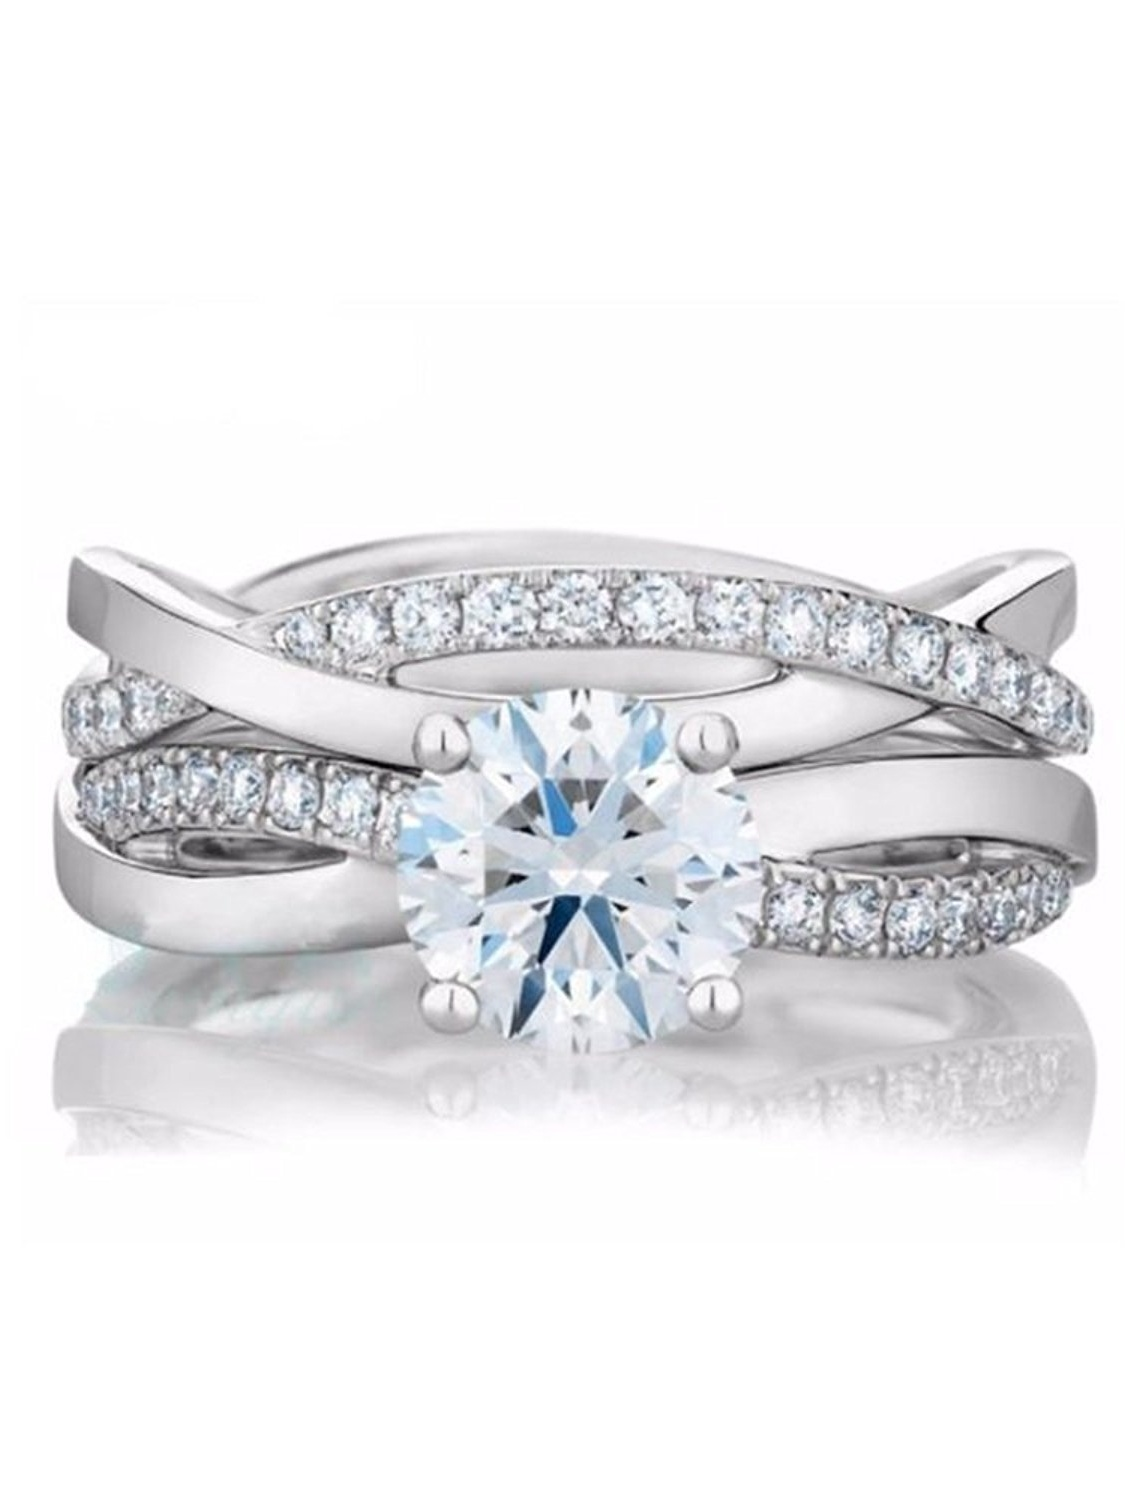 Queena Engagement and Wedding Band Ring Set 925 Sterling Silver